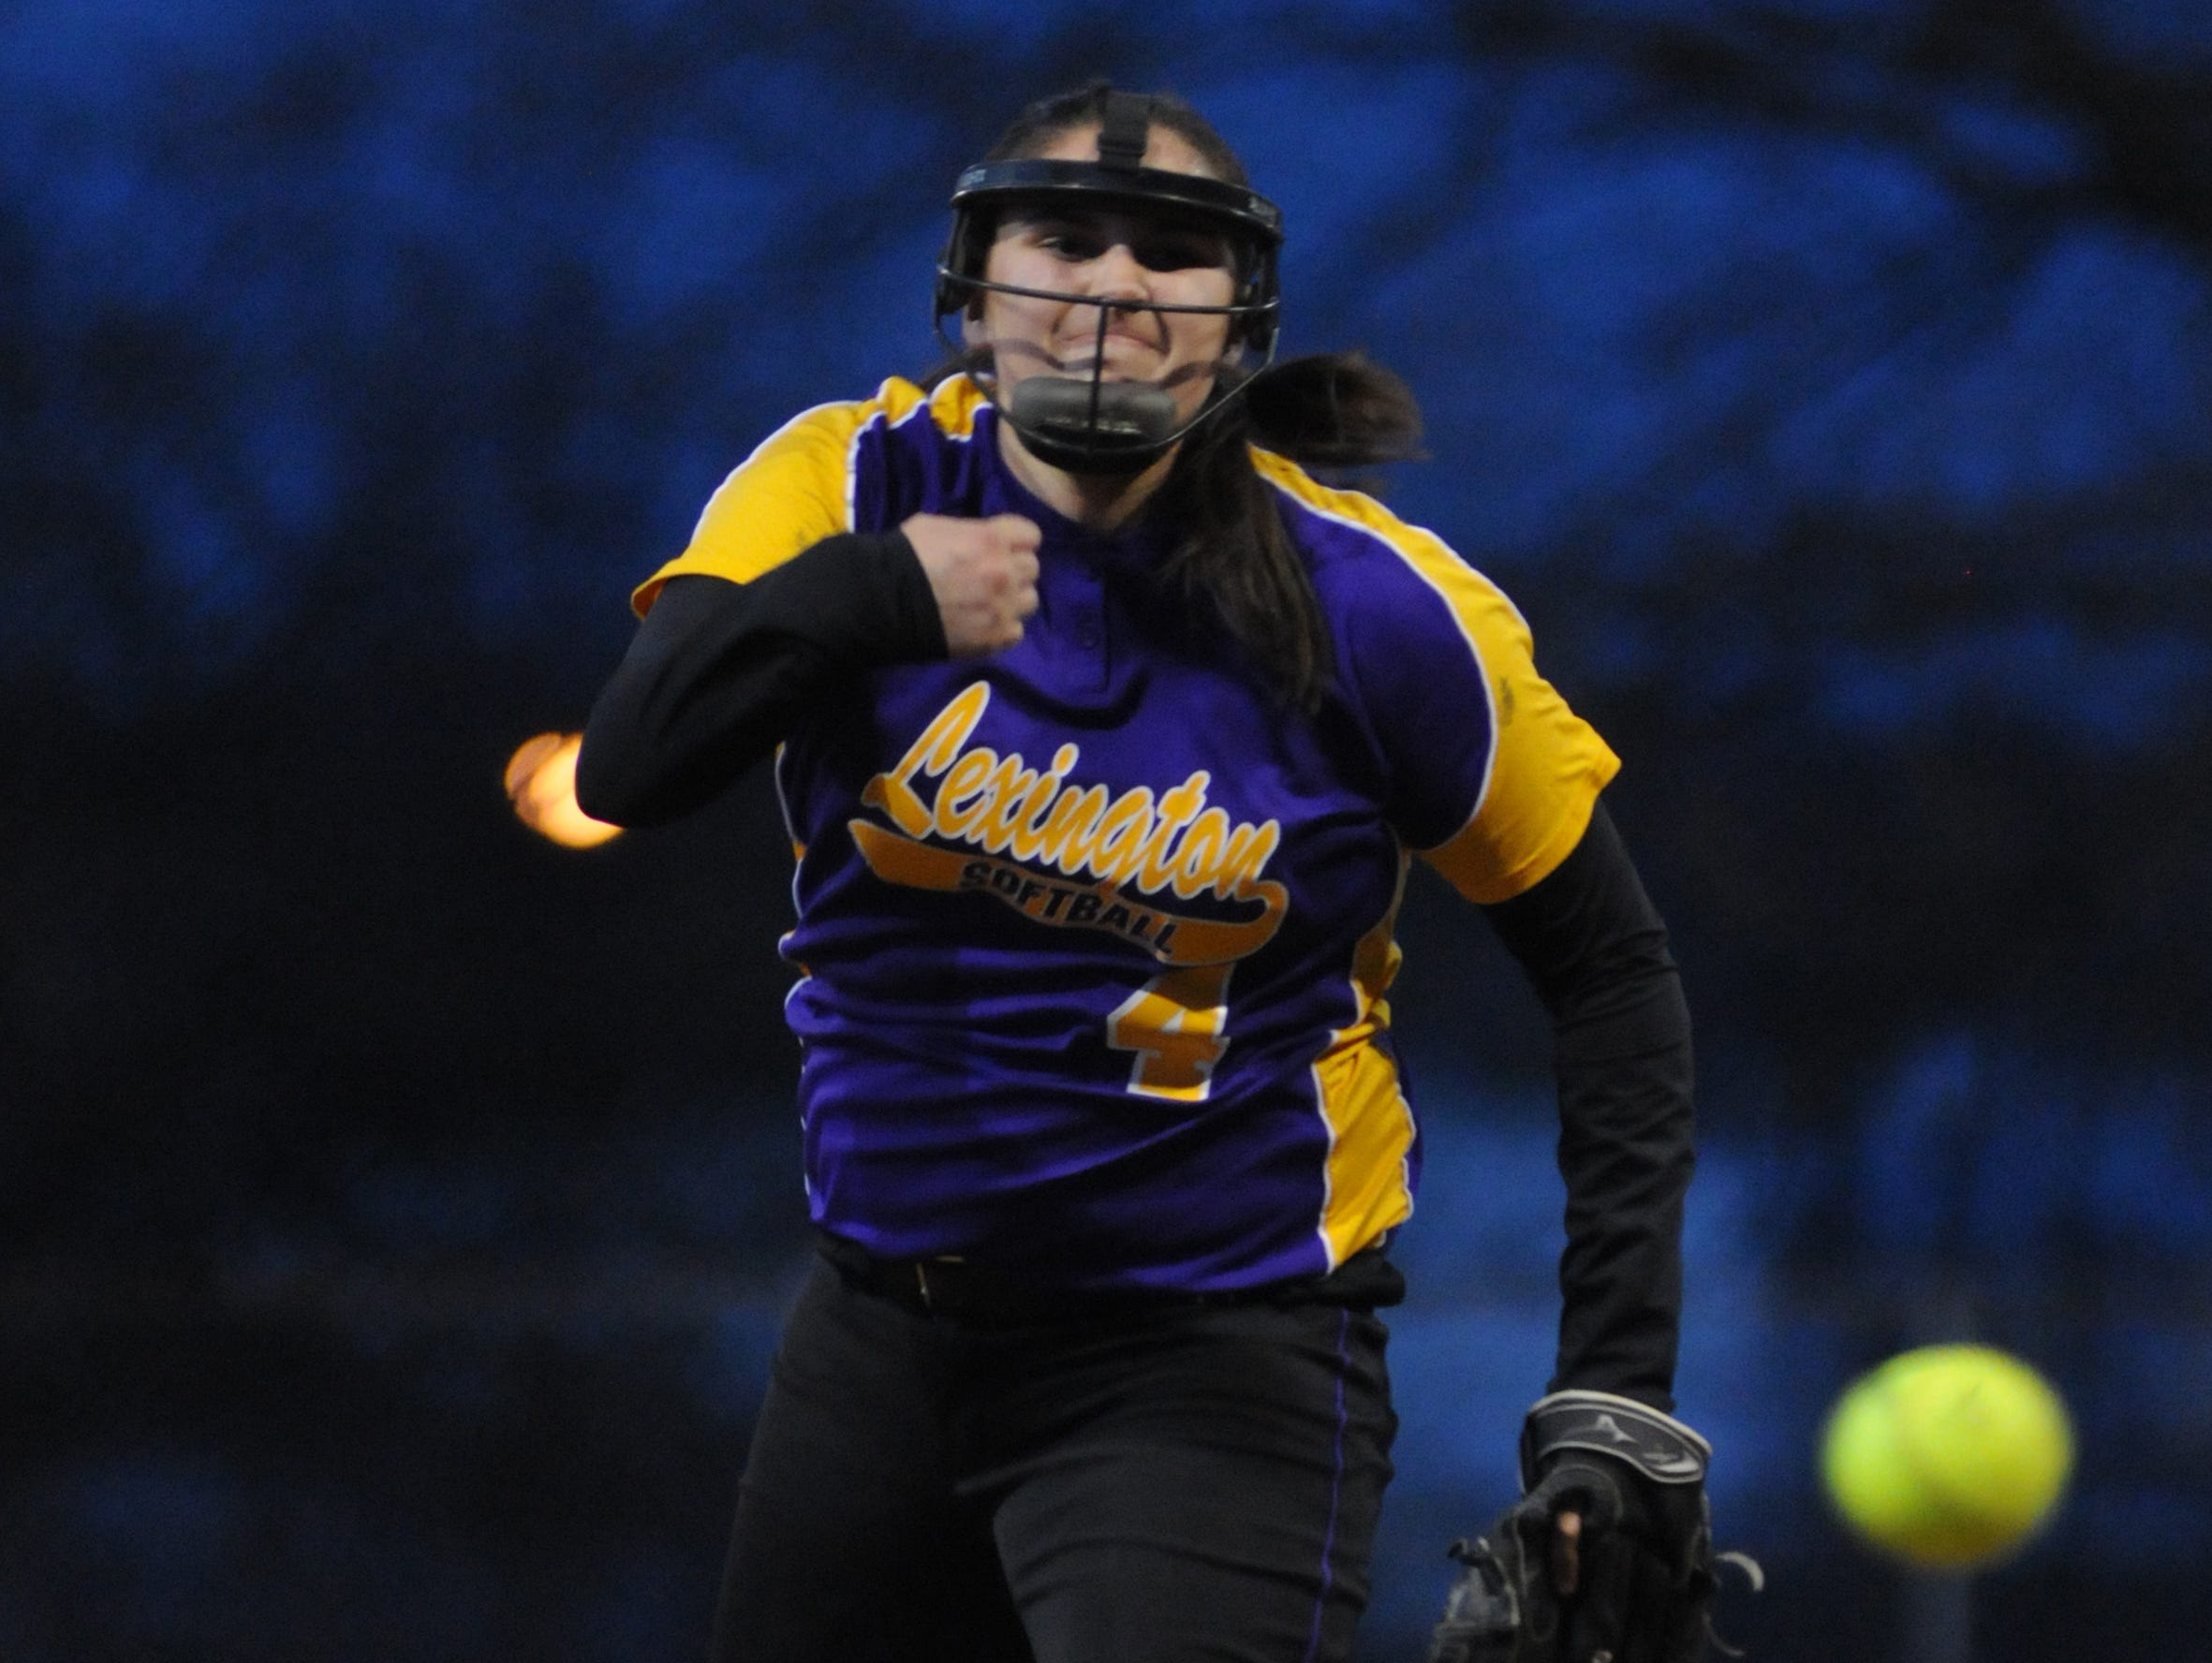 Lexington's Abbie Sgro delivers a strike against Kenton Ridge at last year's Wendy's Spring Classic in Ashland. The reigning News Journal Pitcher of the Year returns for her senior softball season.